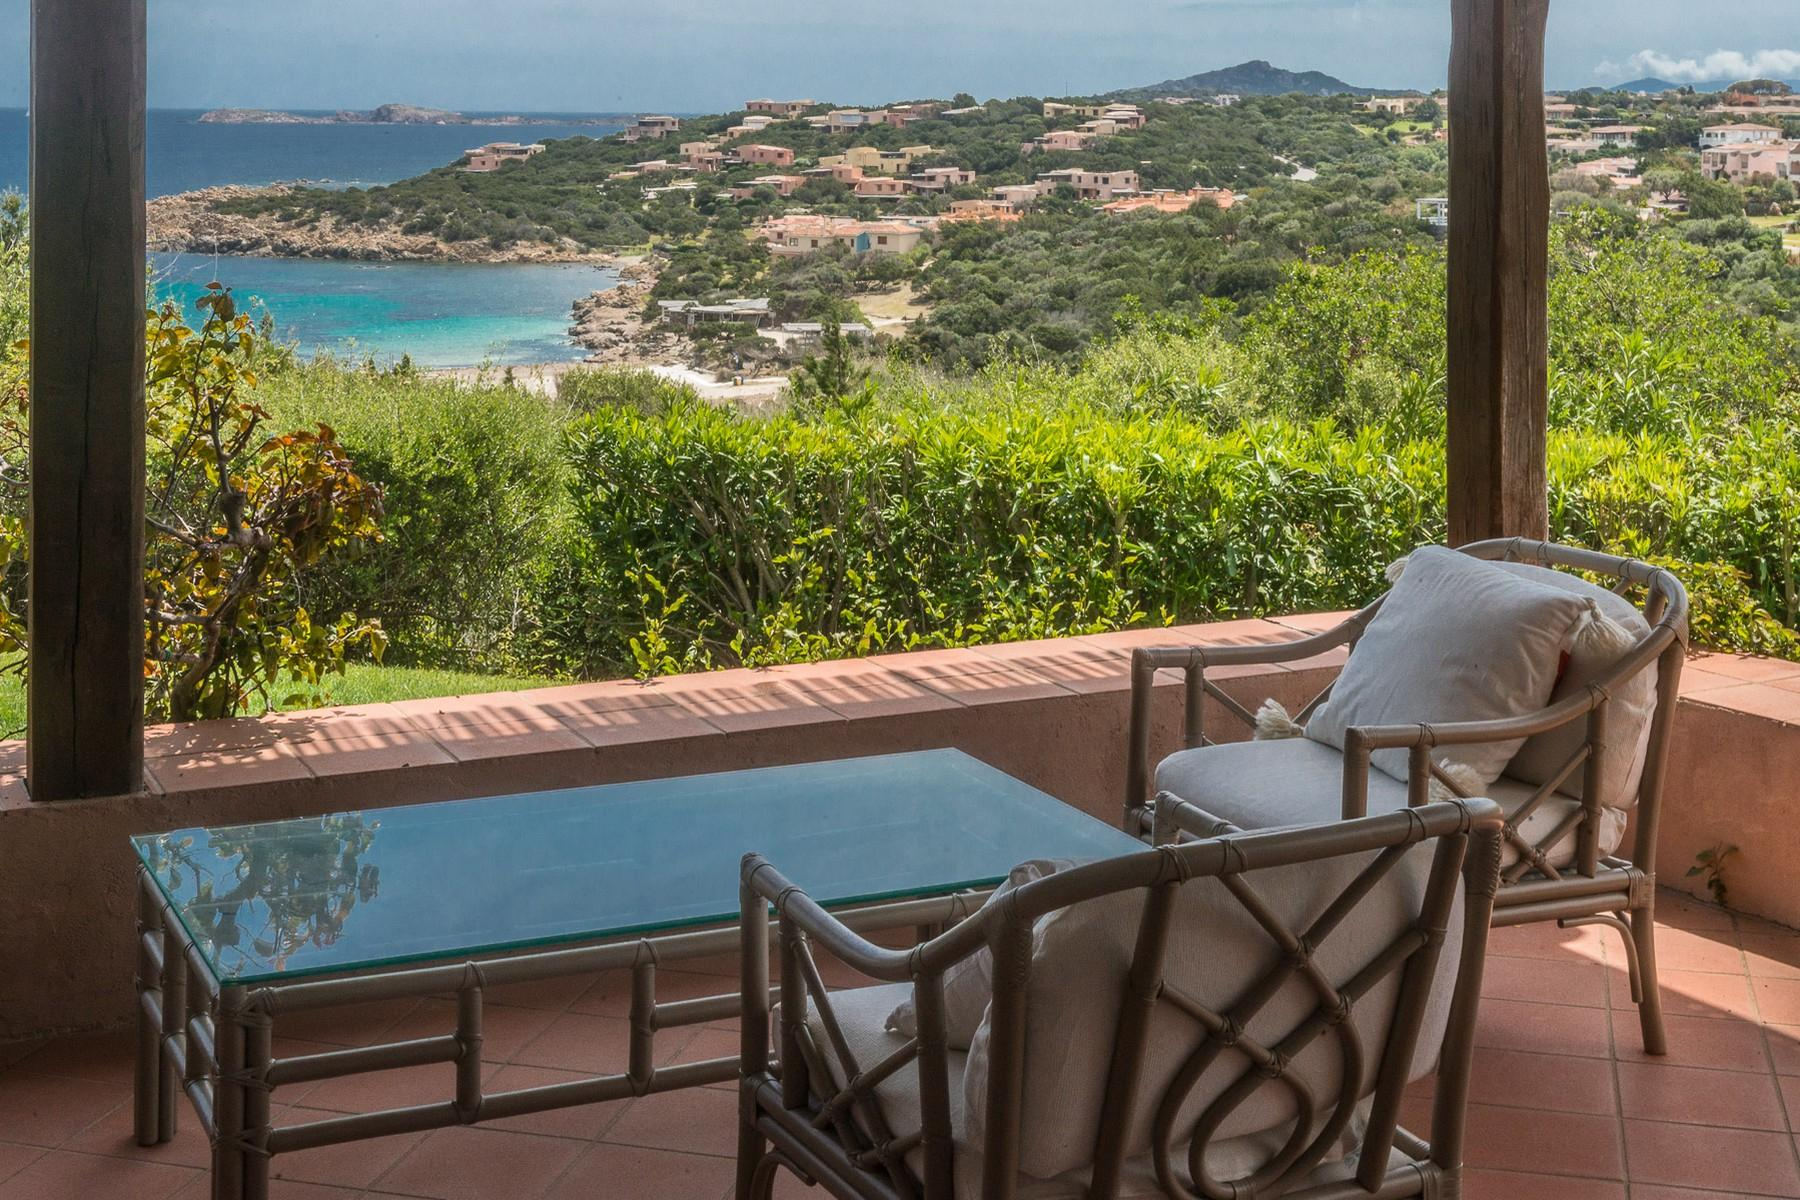 Porto Cervo Cala Granu Delightful Apartment a few steps from the beach - 1